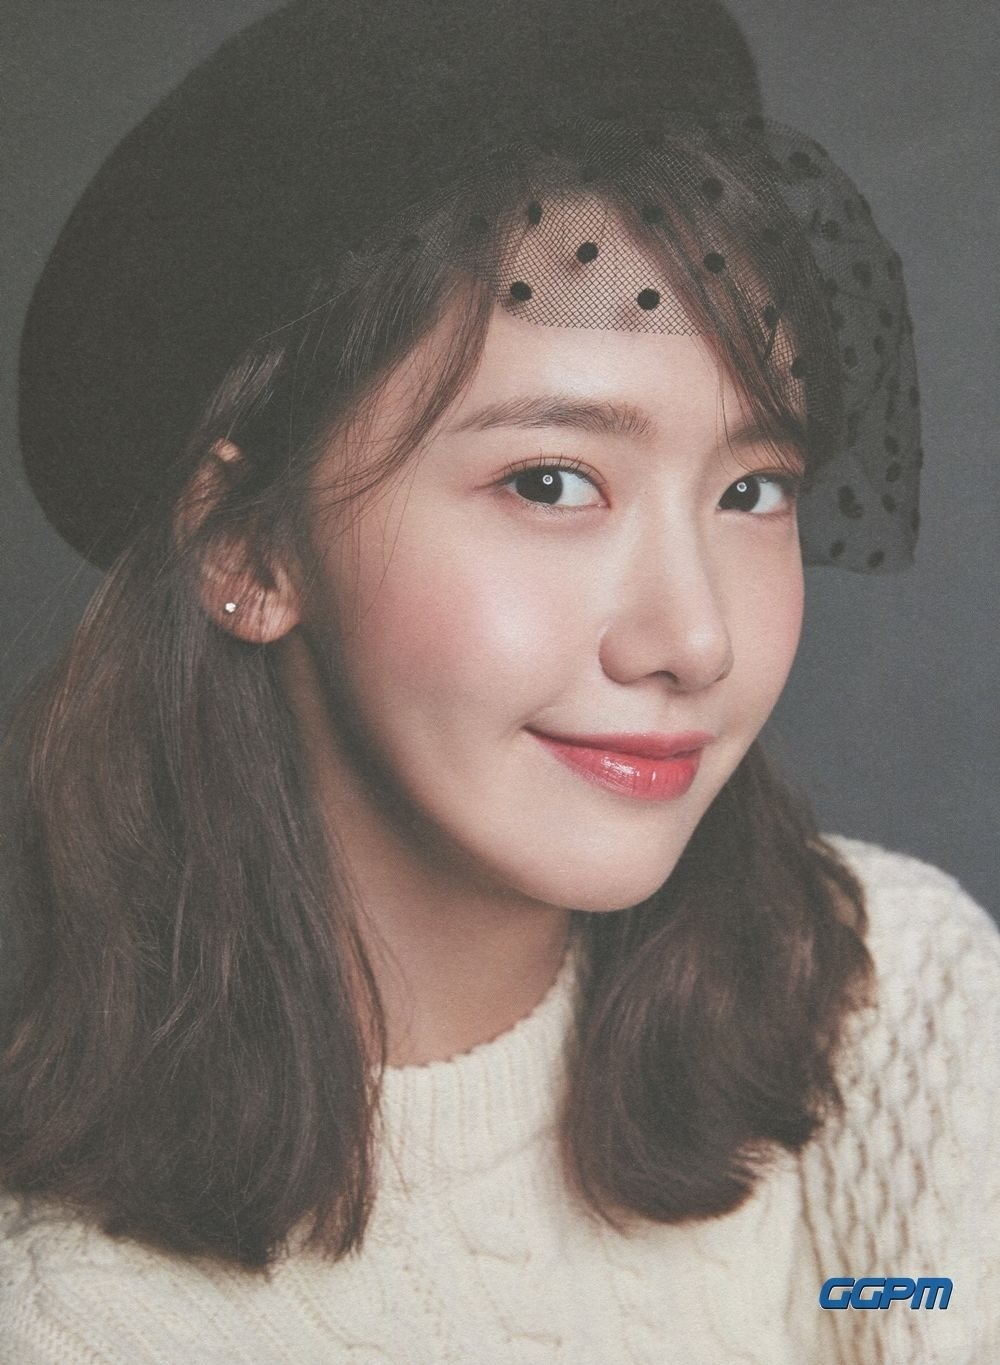 Yoona. Girls' Generation-Oh!gg 2019 Season's Greetings - Diary Fish N Chix Calendar 2019